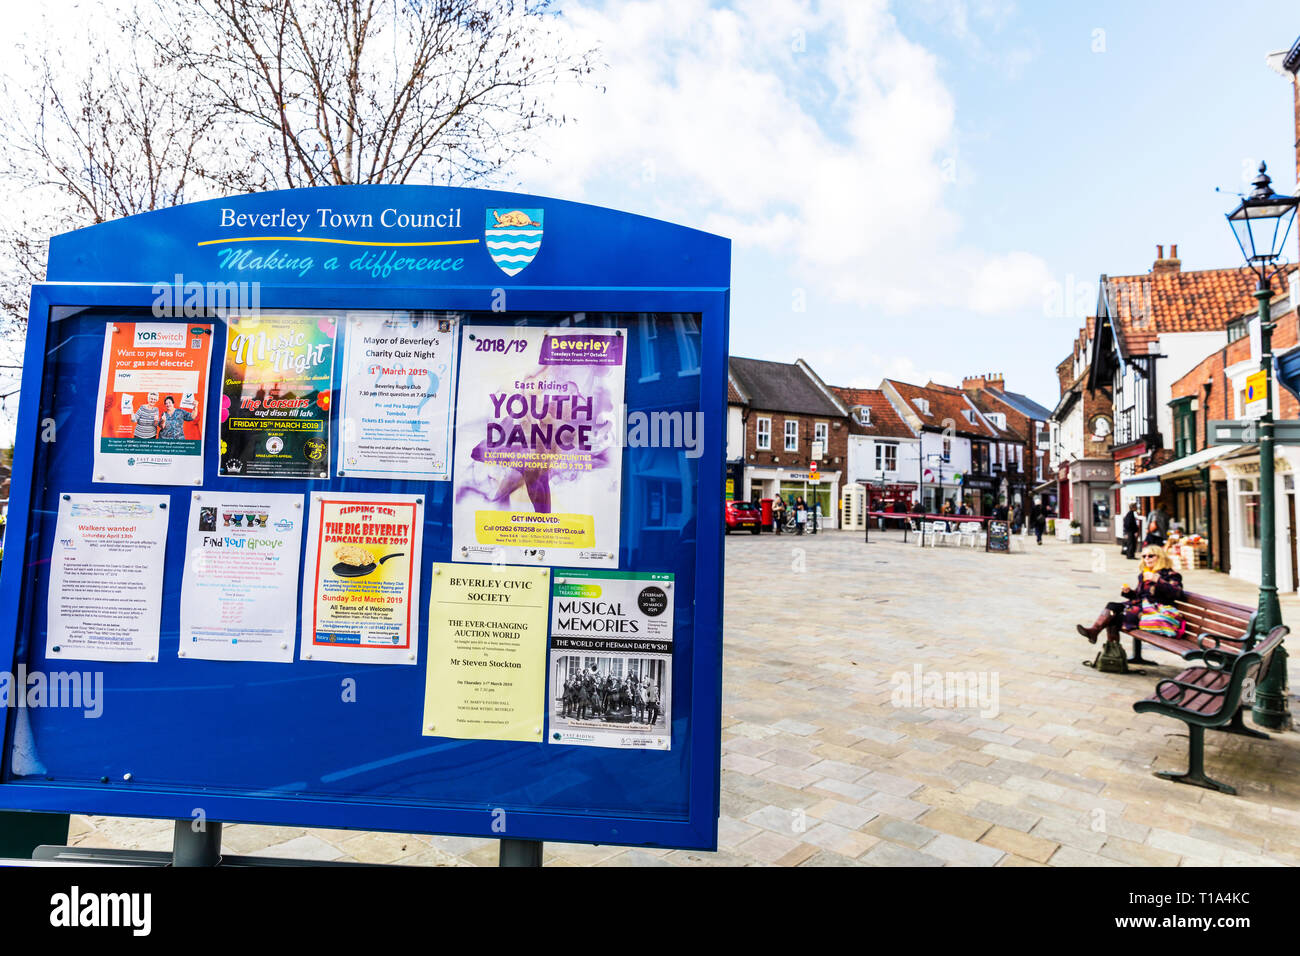 Beverley Town Council sign, Yorkshire UK England, Beverley Town, Beverley Town notice board, Notice board, town notice board, notice boards, Beverley - Stock Image